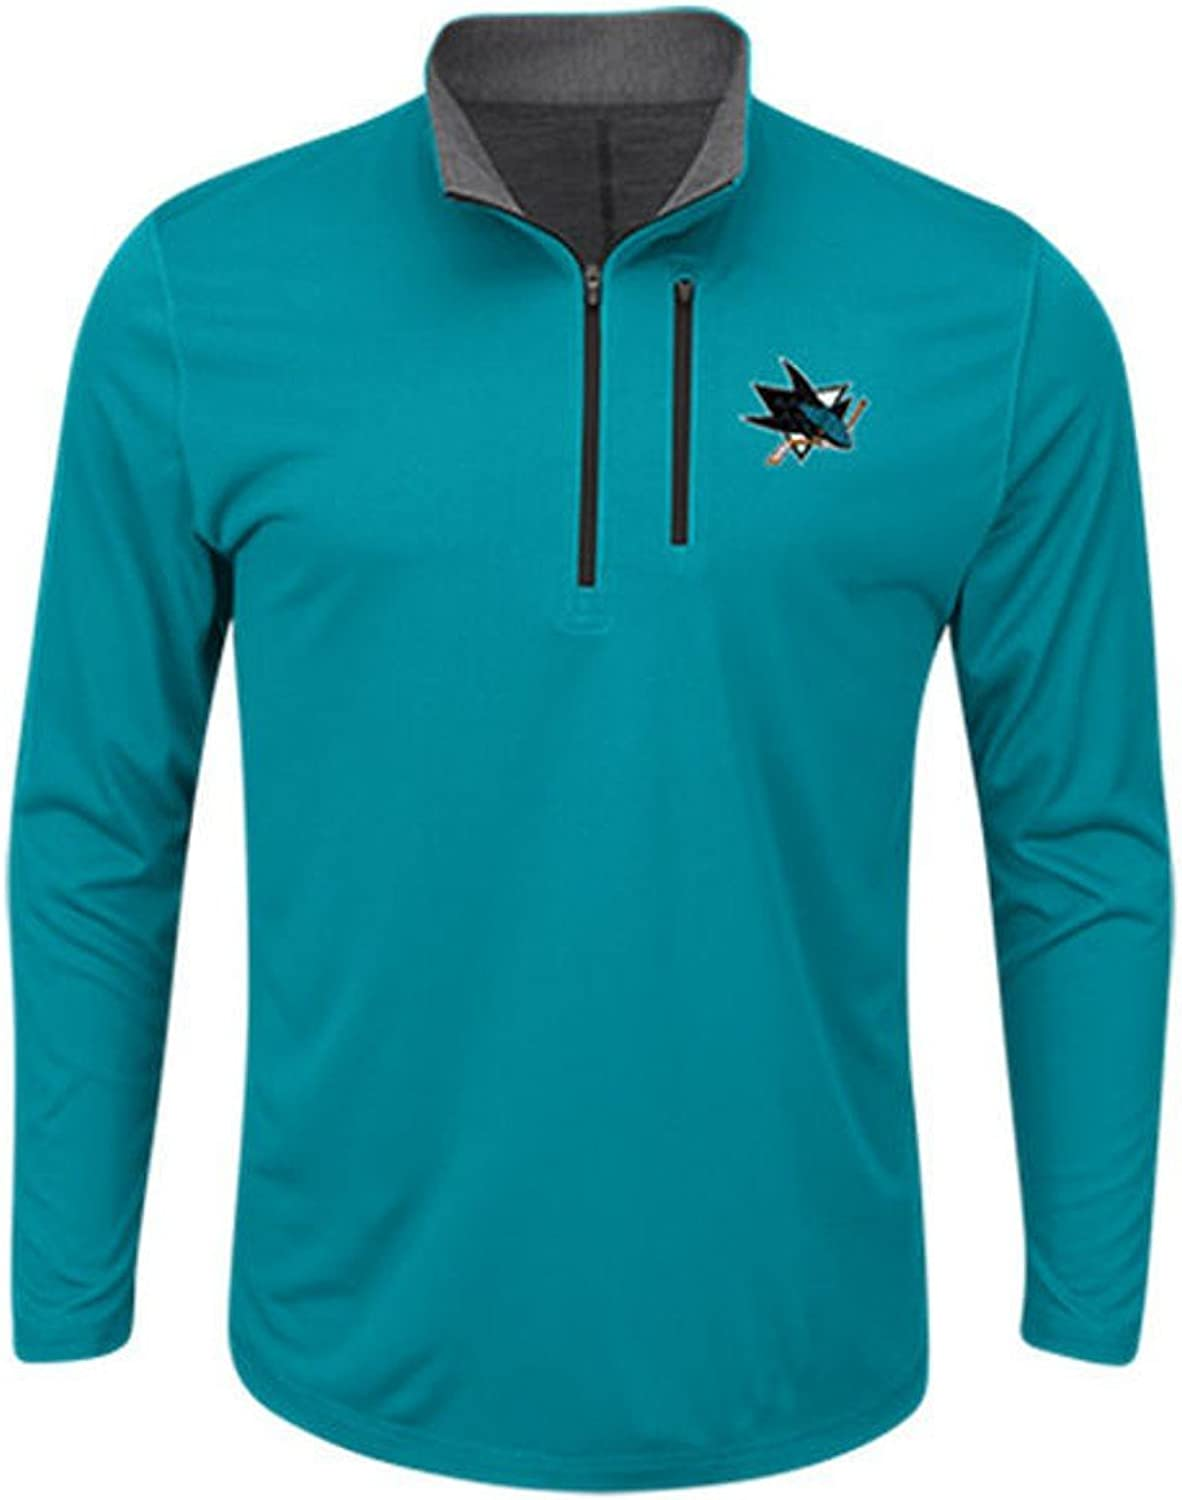 VF Youth San Jose Sharks Good Work Cool Base Fleece Jacket Sweatshirt Youth Size (Large)